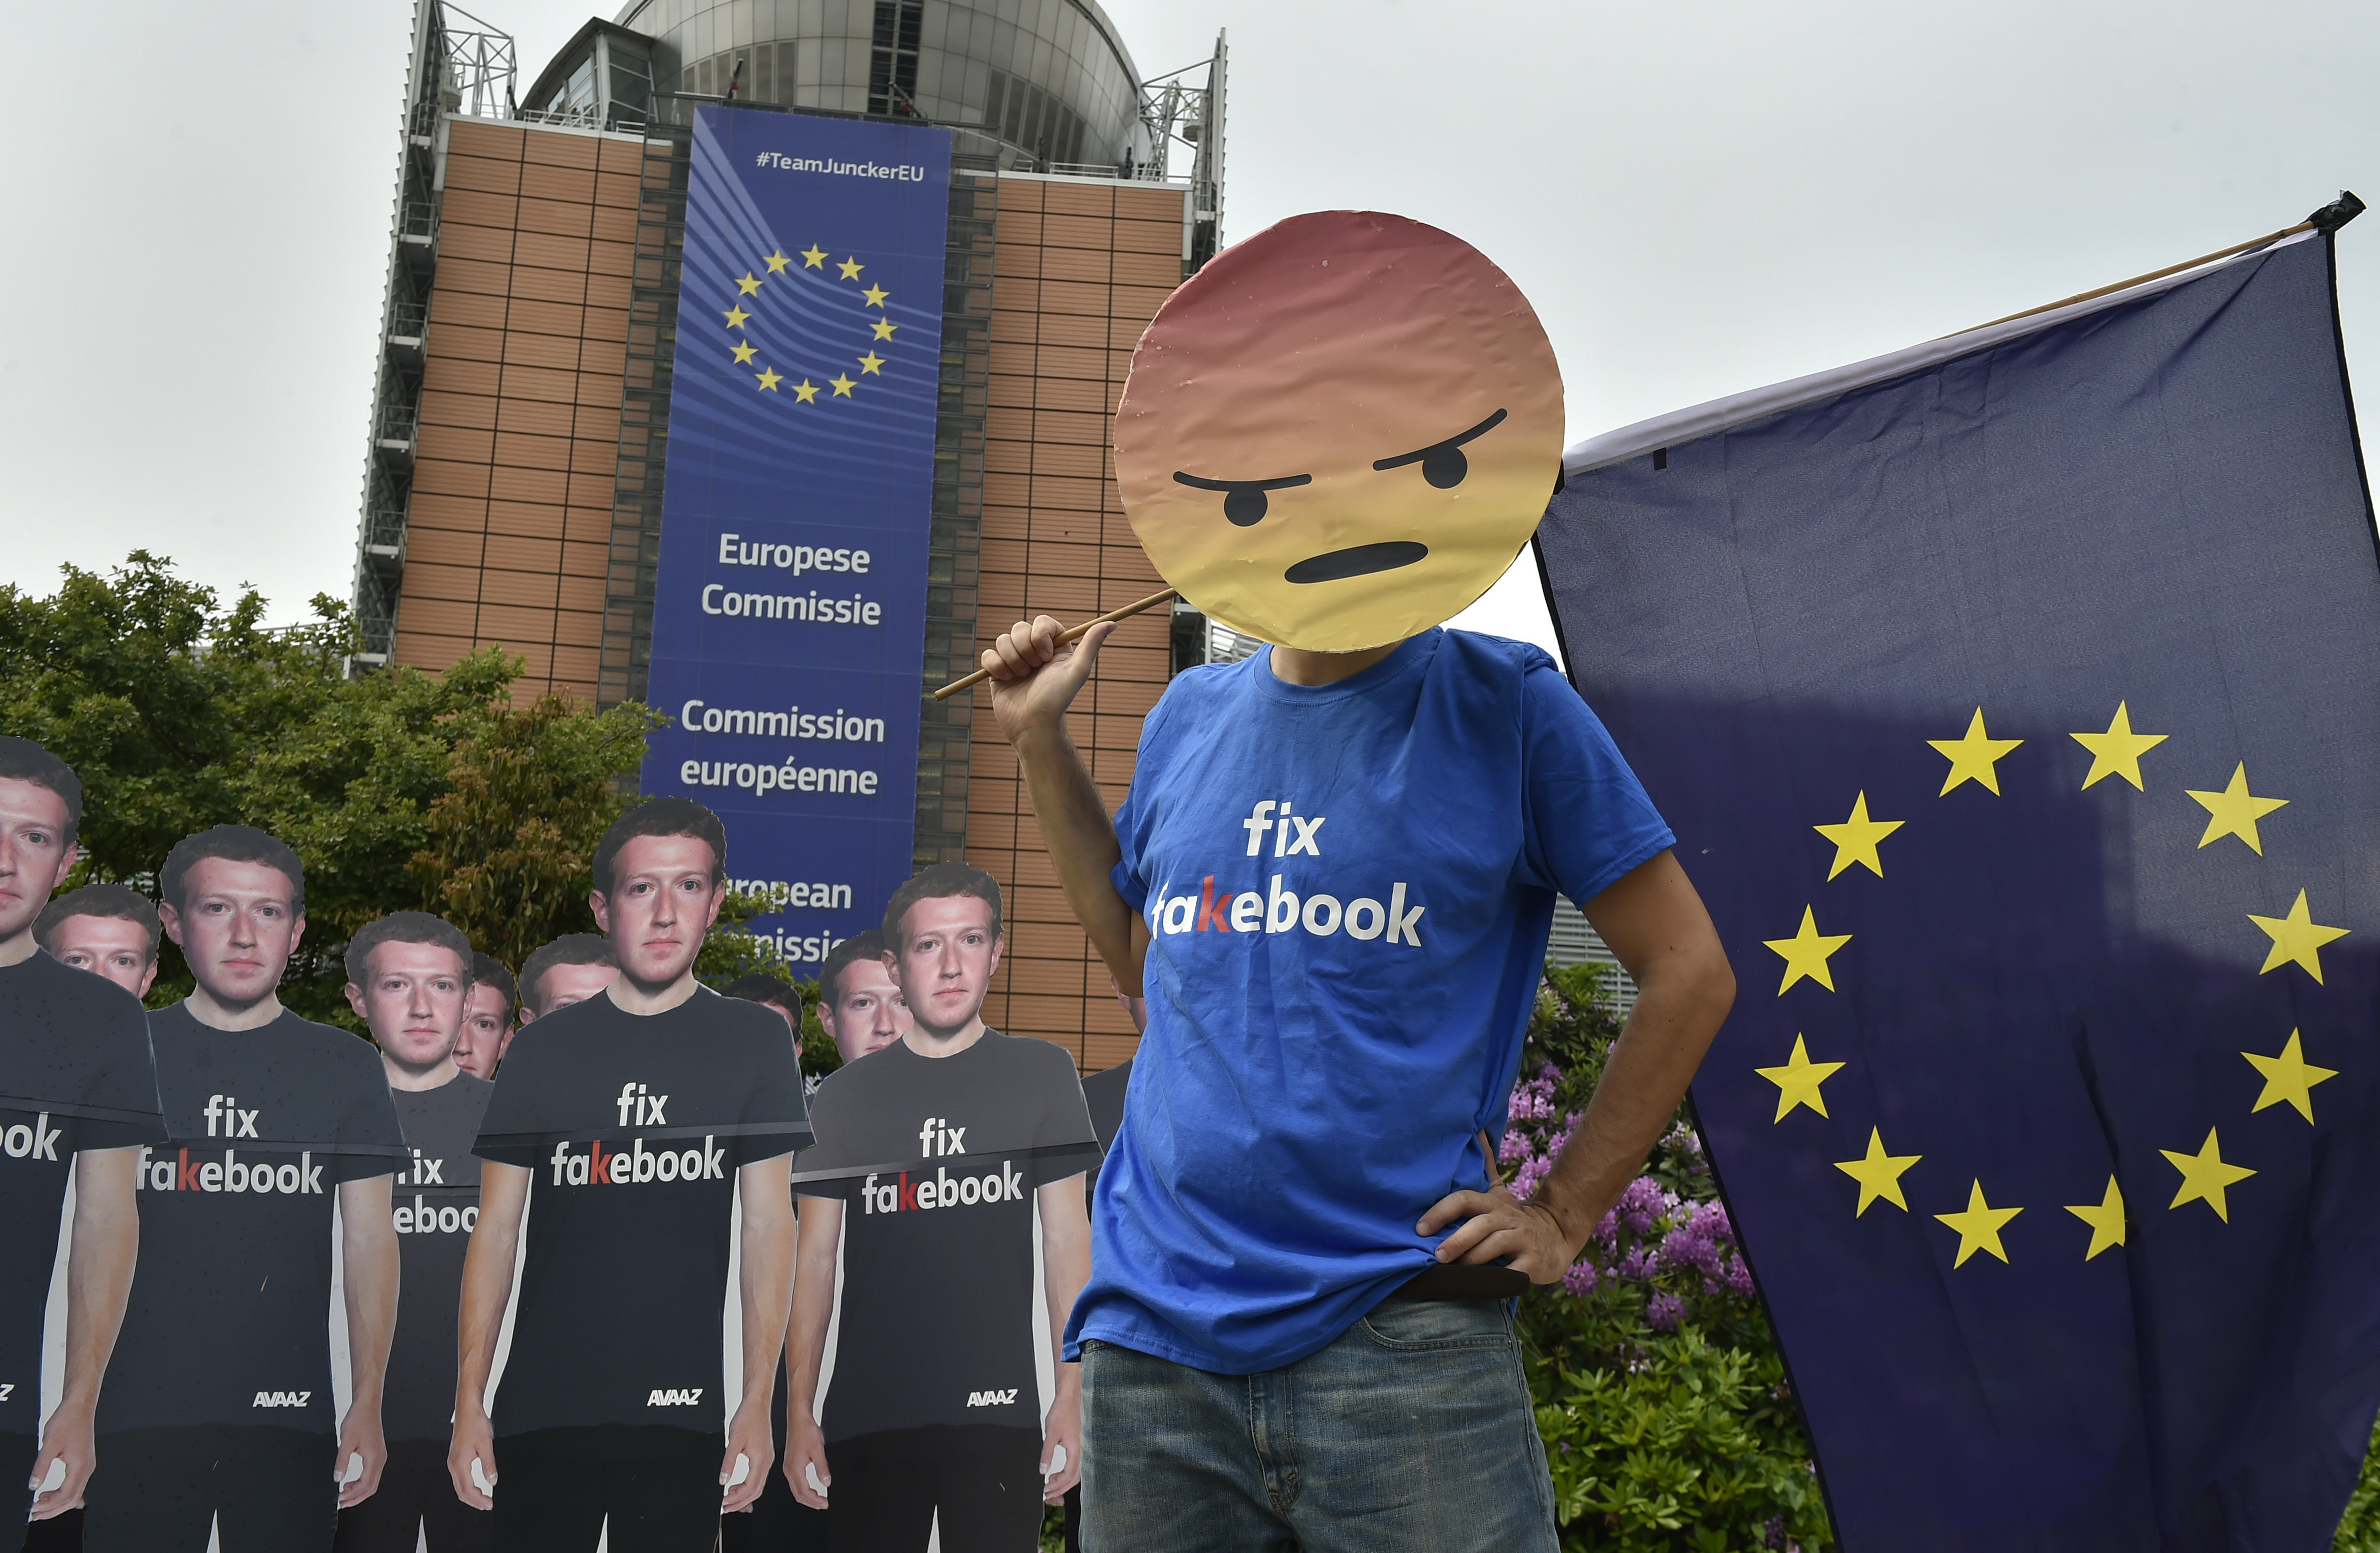 Global activists of Avaaz, set up cardboard cutouts of Facebook chief Mark Zuckerberg, on which is written Fix Fakebook, in front of the European Union headquarters in Brussels, on May 22, 2018, as they call attention to what the groups says are hundreds of millions of fake accounts still spreading disinformation on Facebook.